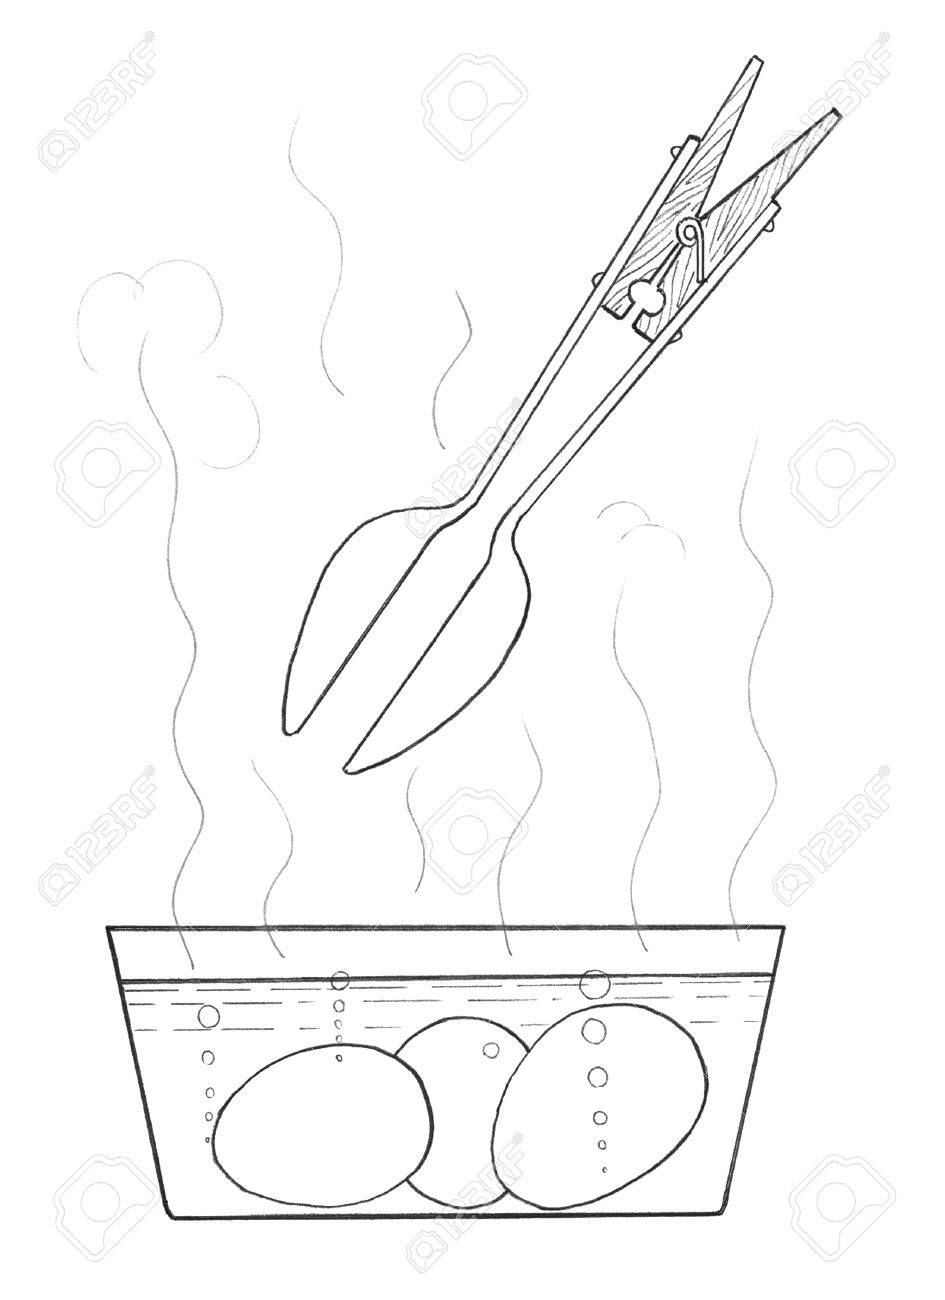 945x1300 Eggs Get From The Boiling Water. Schematic Drawing Stock Photo